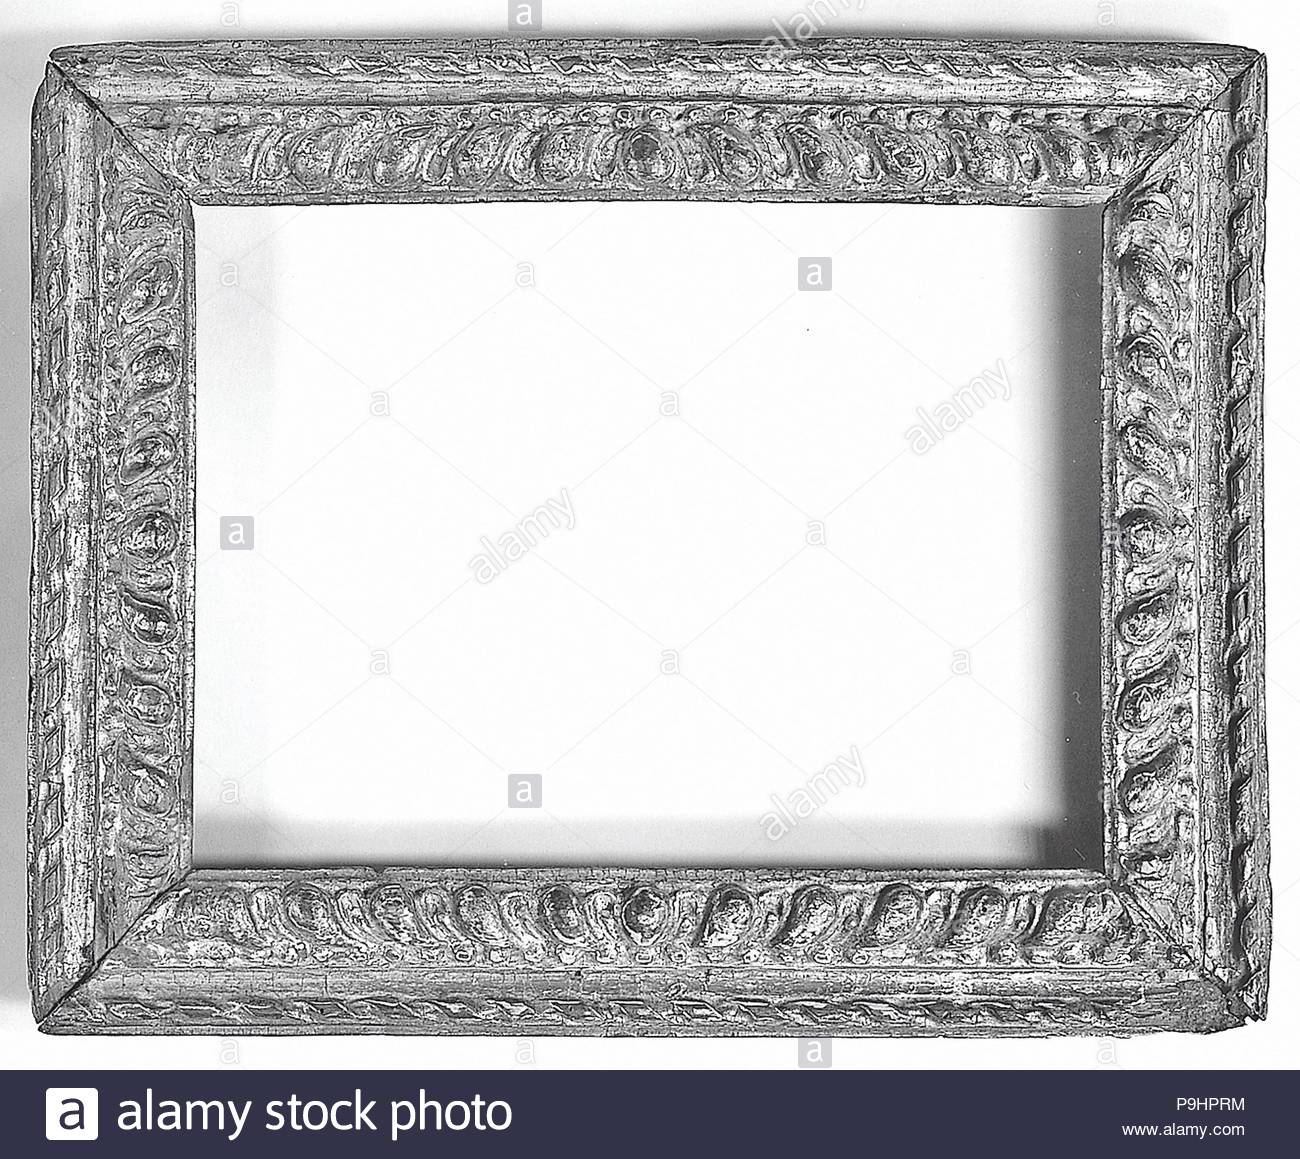 Wood Frame Decorated Gold Inside Dimension Approx Antiques 62x77 Cm